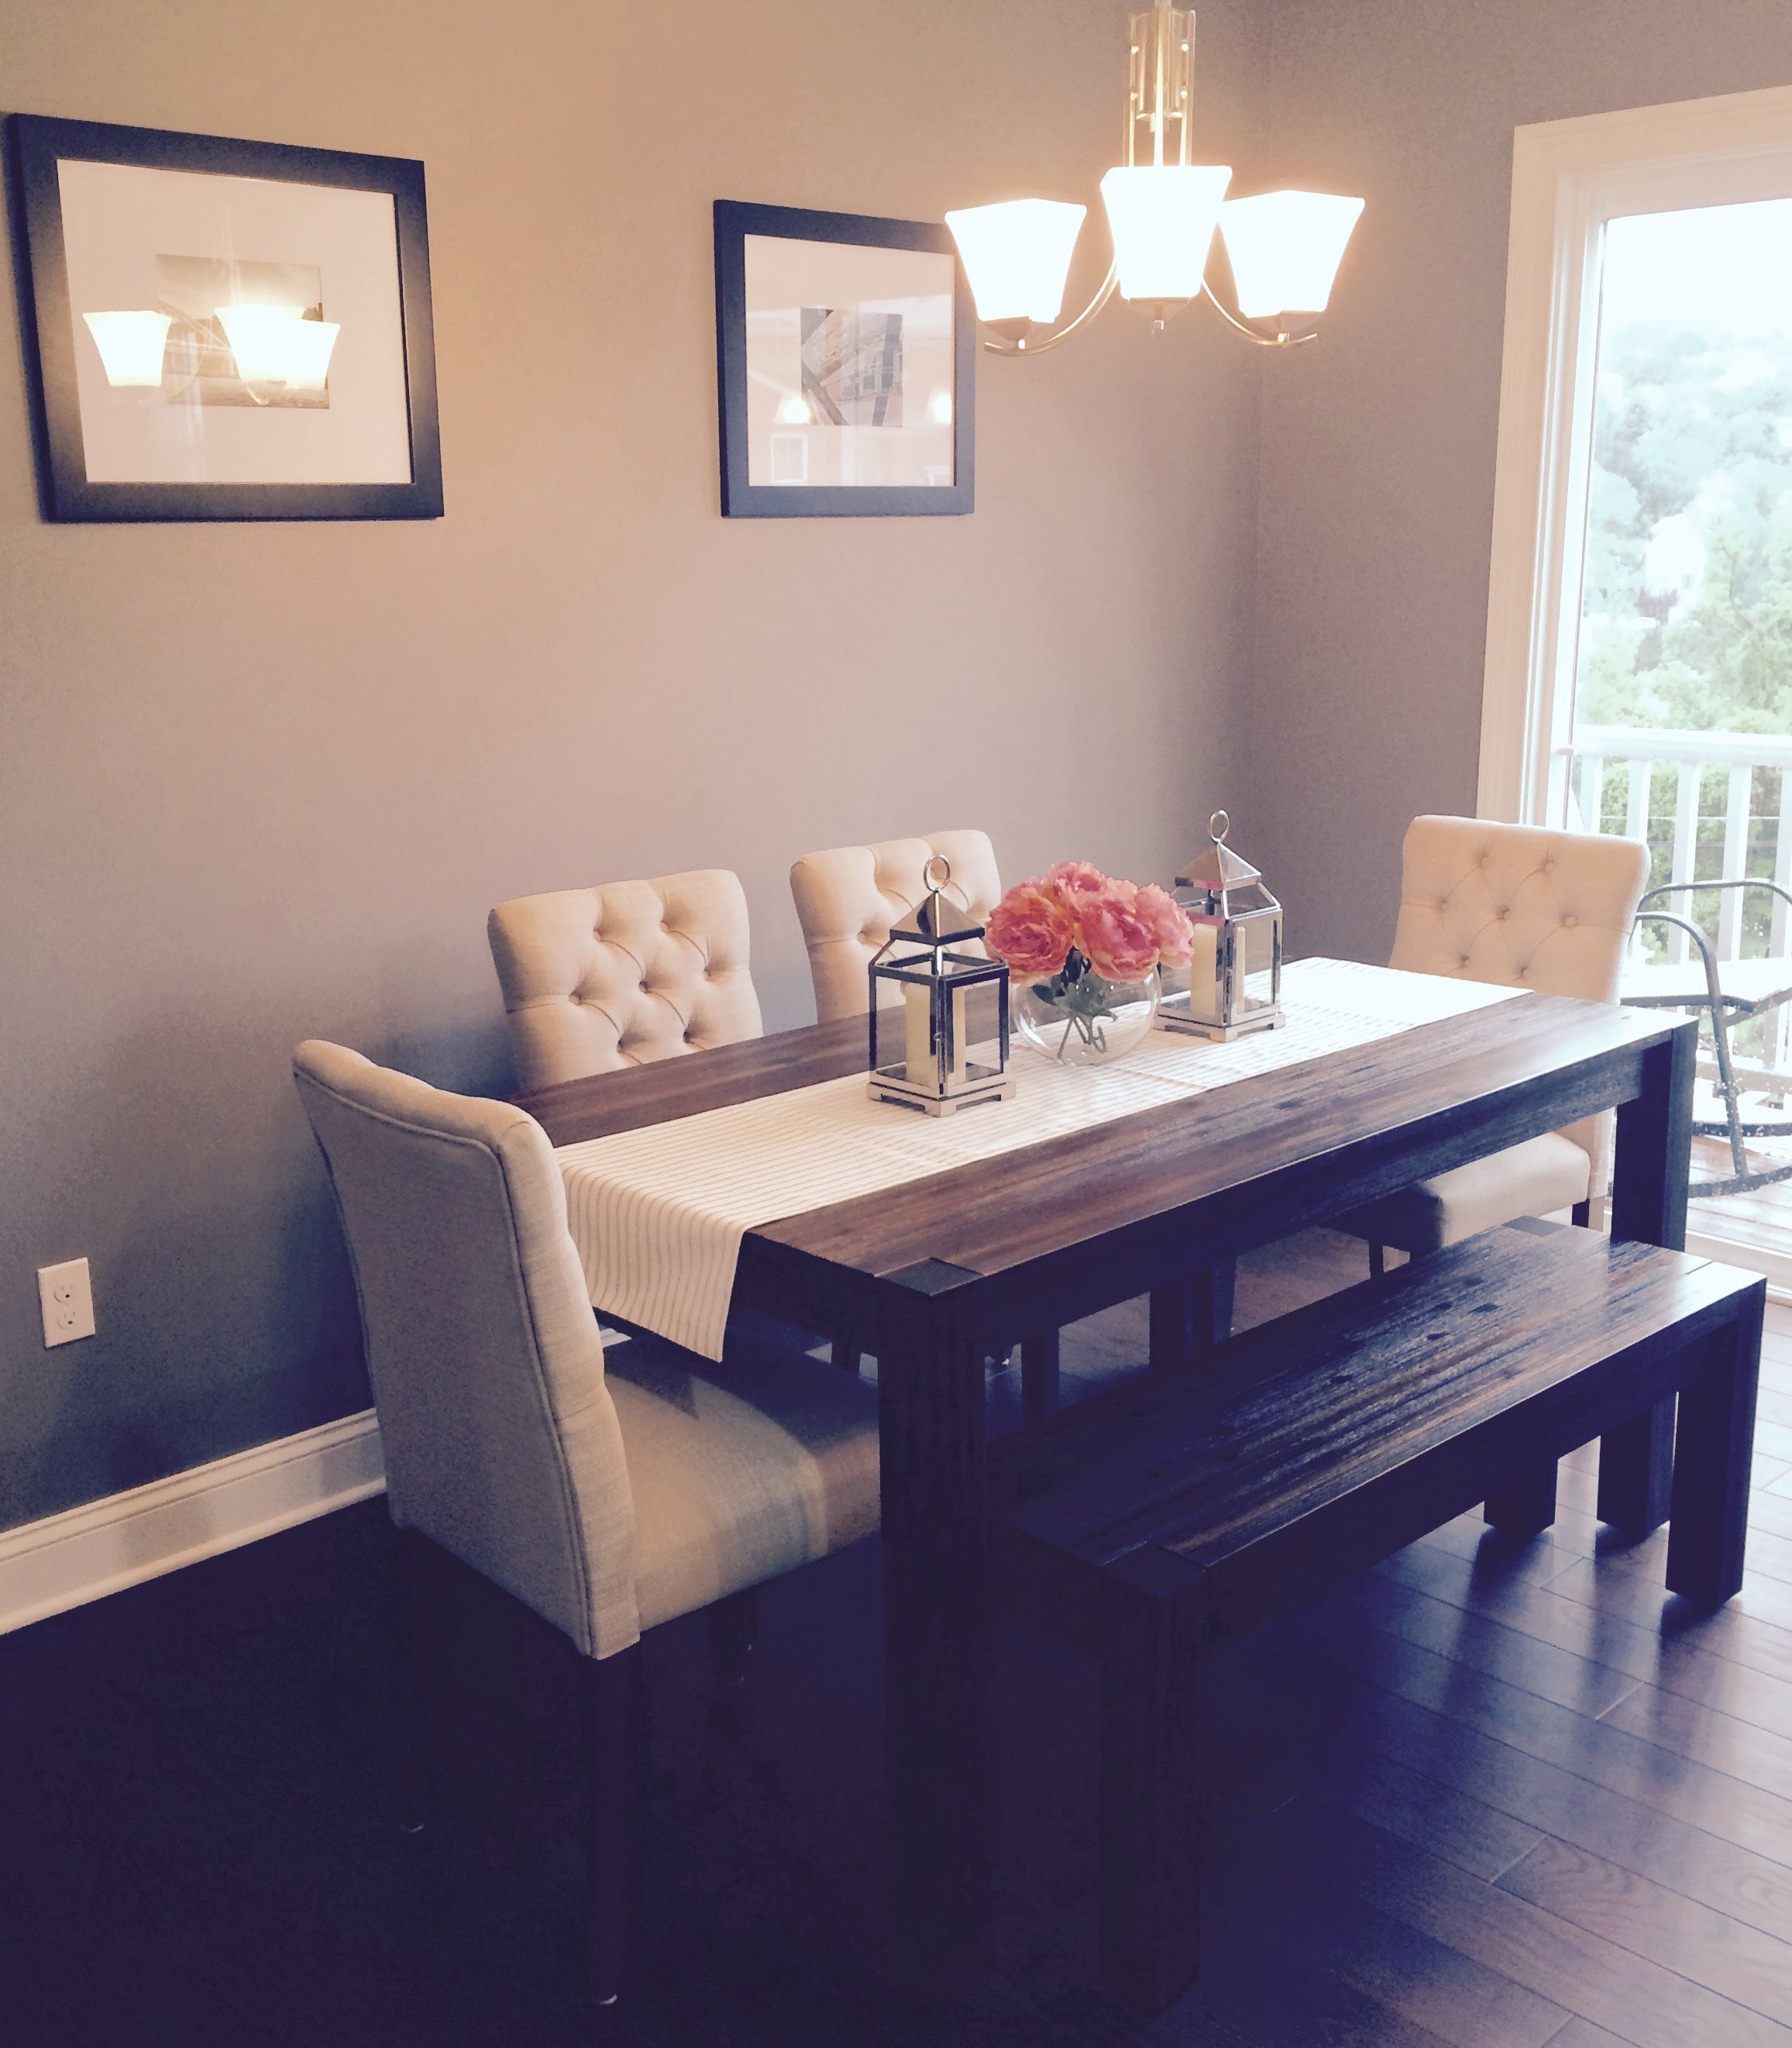 46 Cozy Dining Room Table Decor Ideas The Dining Room Table Is Often A Very Formal And Important P Dining Room Small Dining Room Cozy Dining Room Centerpiece